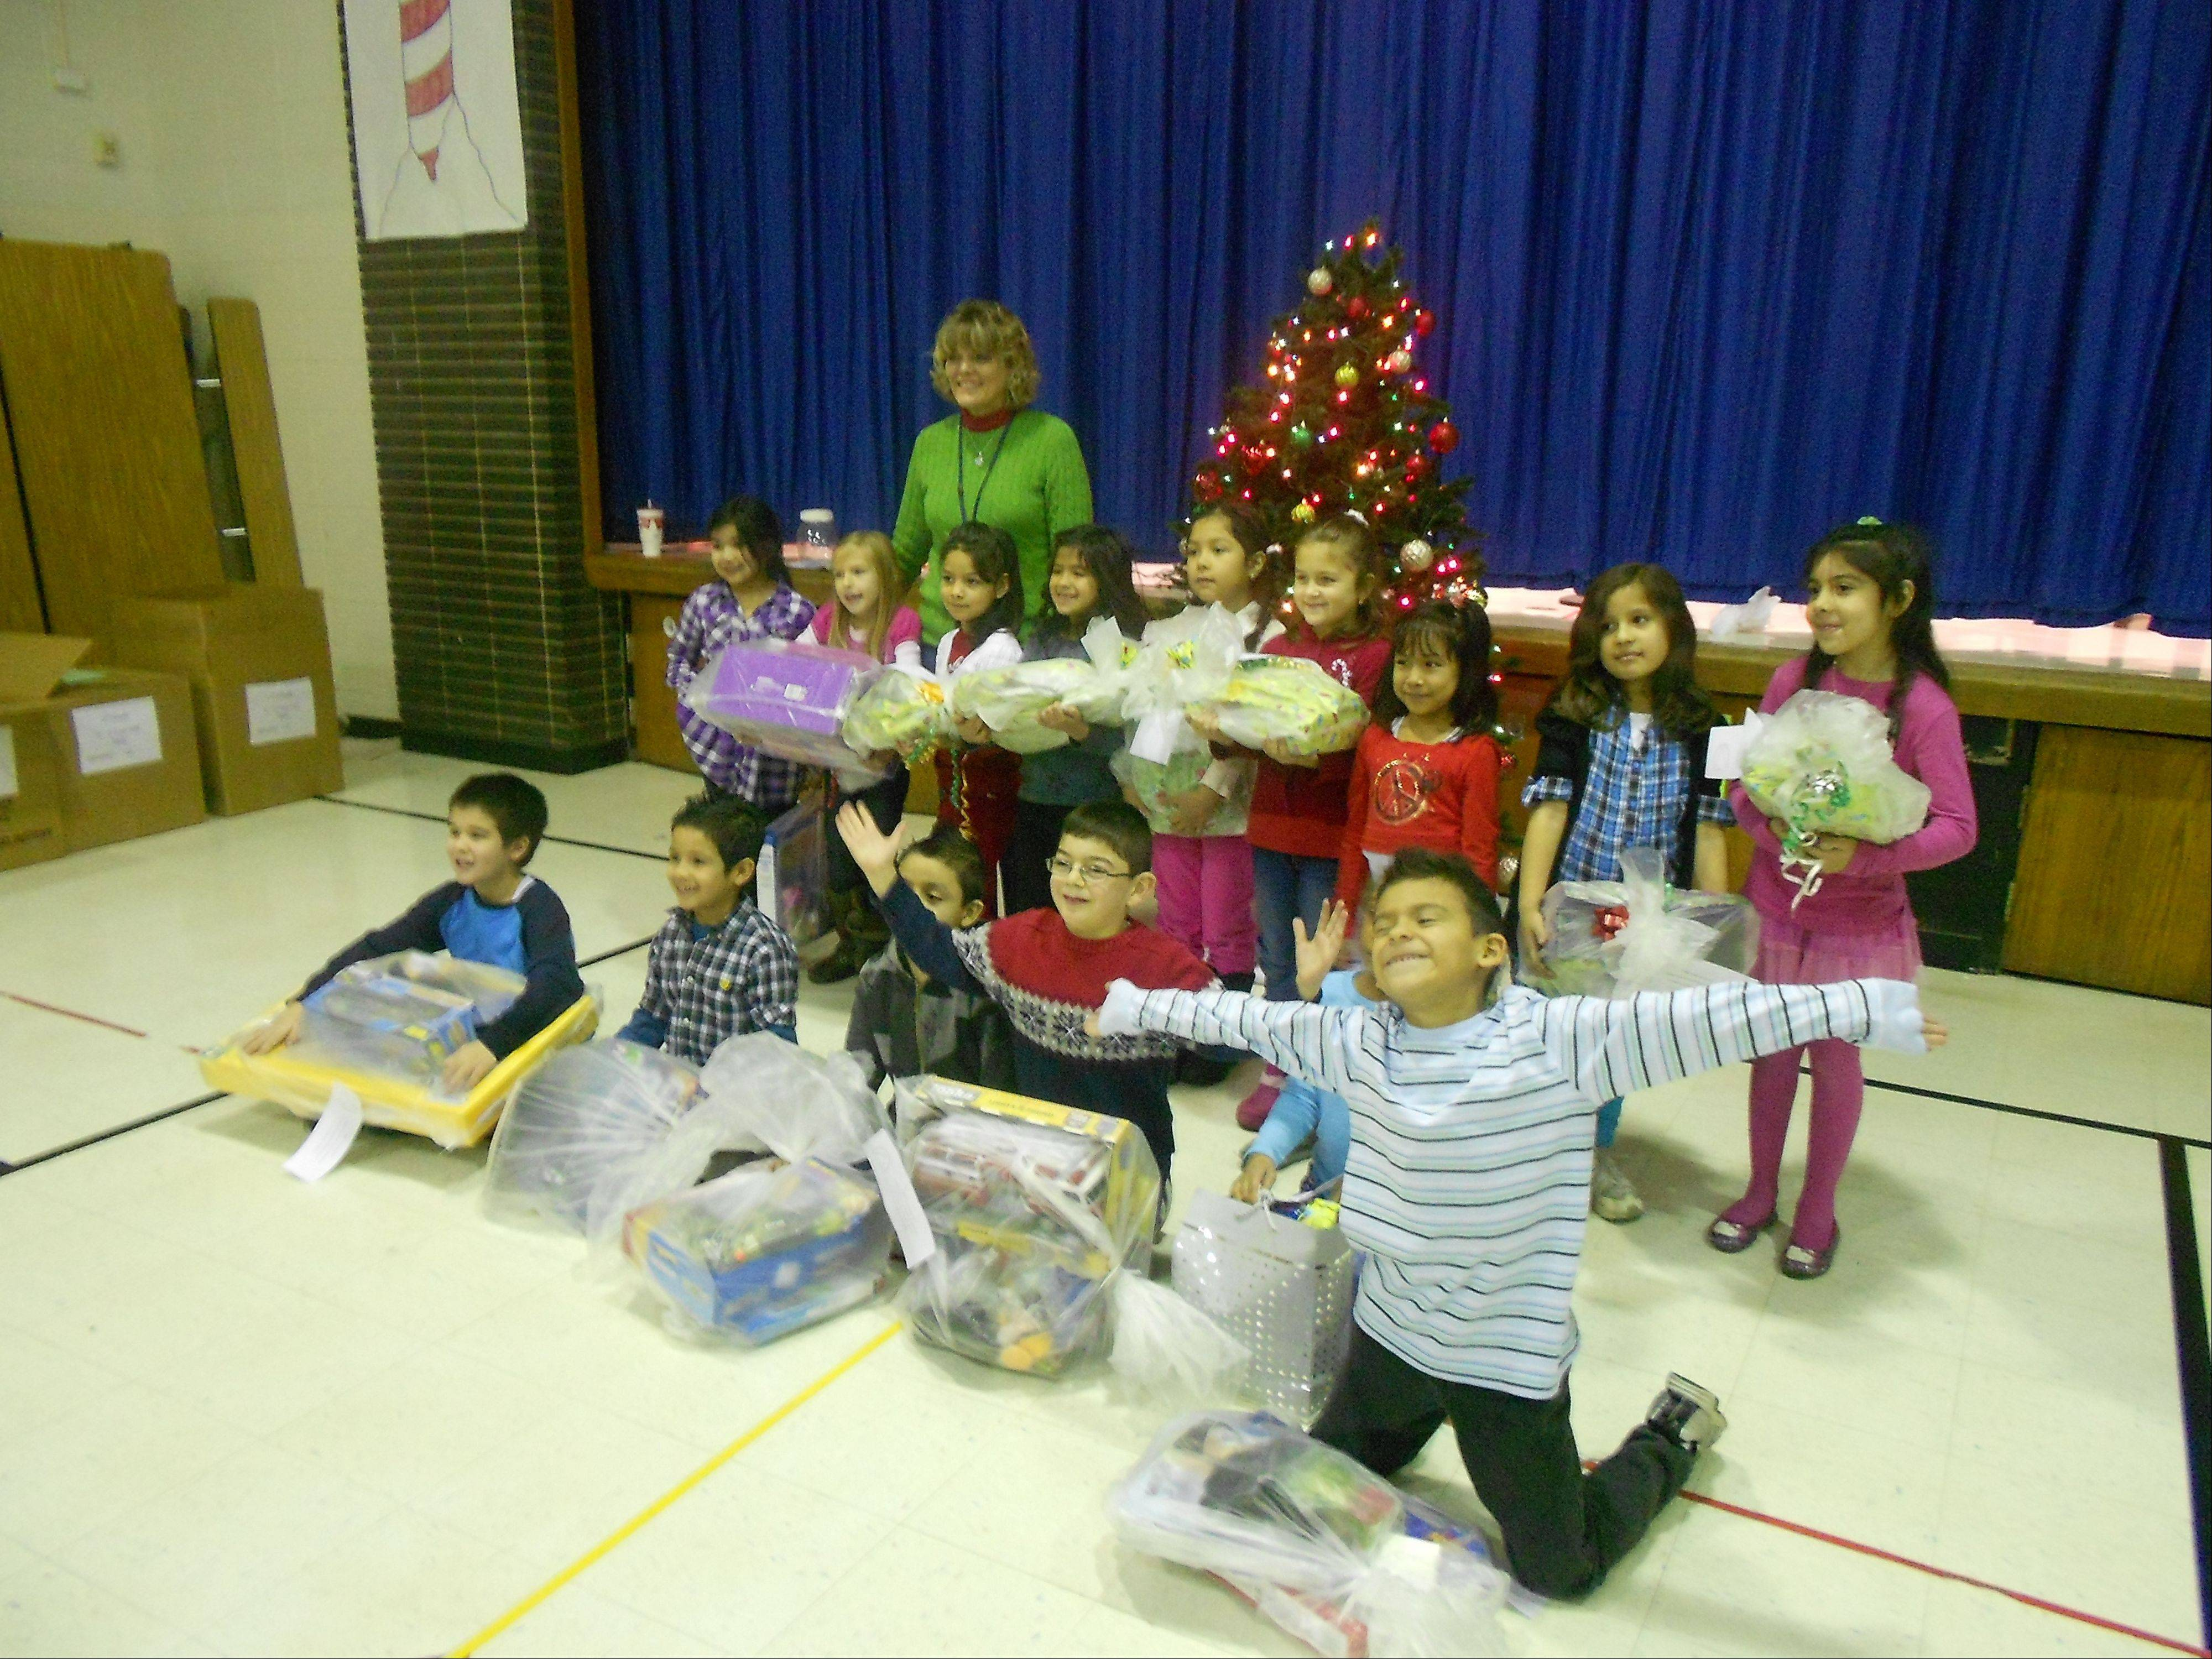 All 415 students at Lake Park Elementary School in Addison received gifts this week from donations through the Humanitarian Service Project. The organization chose Lake Park because of its large number of low-income families.